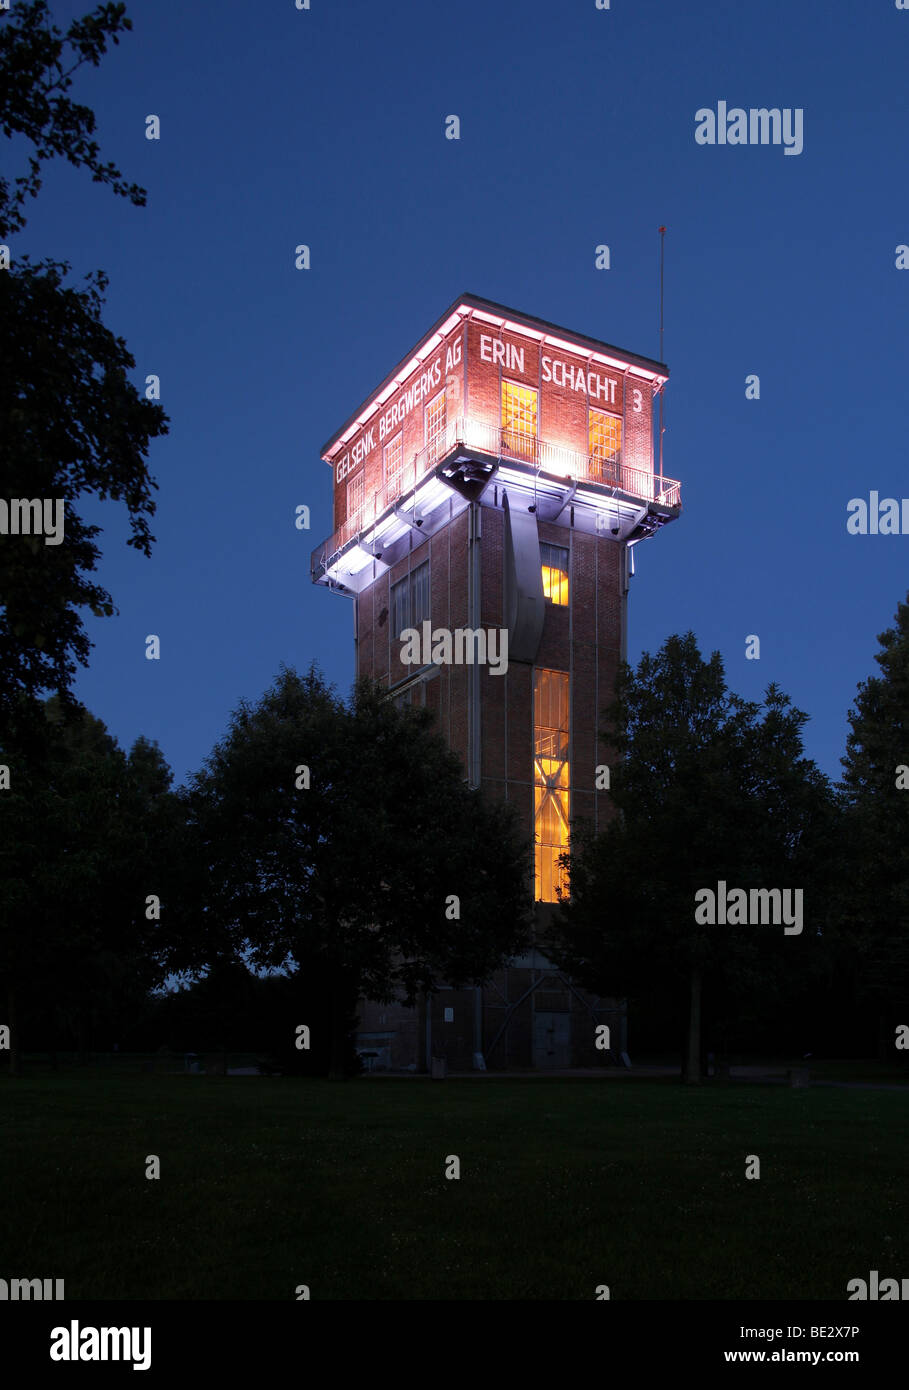 Hammerhead tower of the former Erin colliery, Castrop-Rauxel, Ruhr Area, North Rhine-Westphalia, Germany, Europe - Stock Image